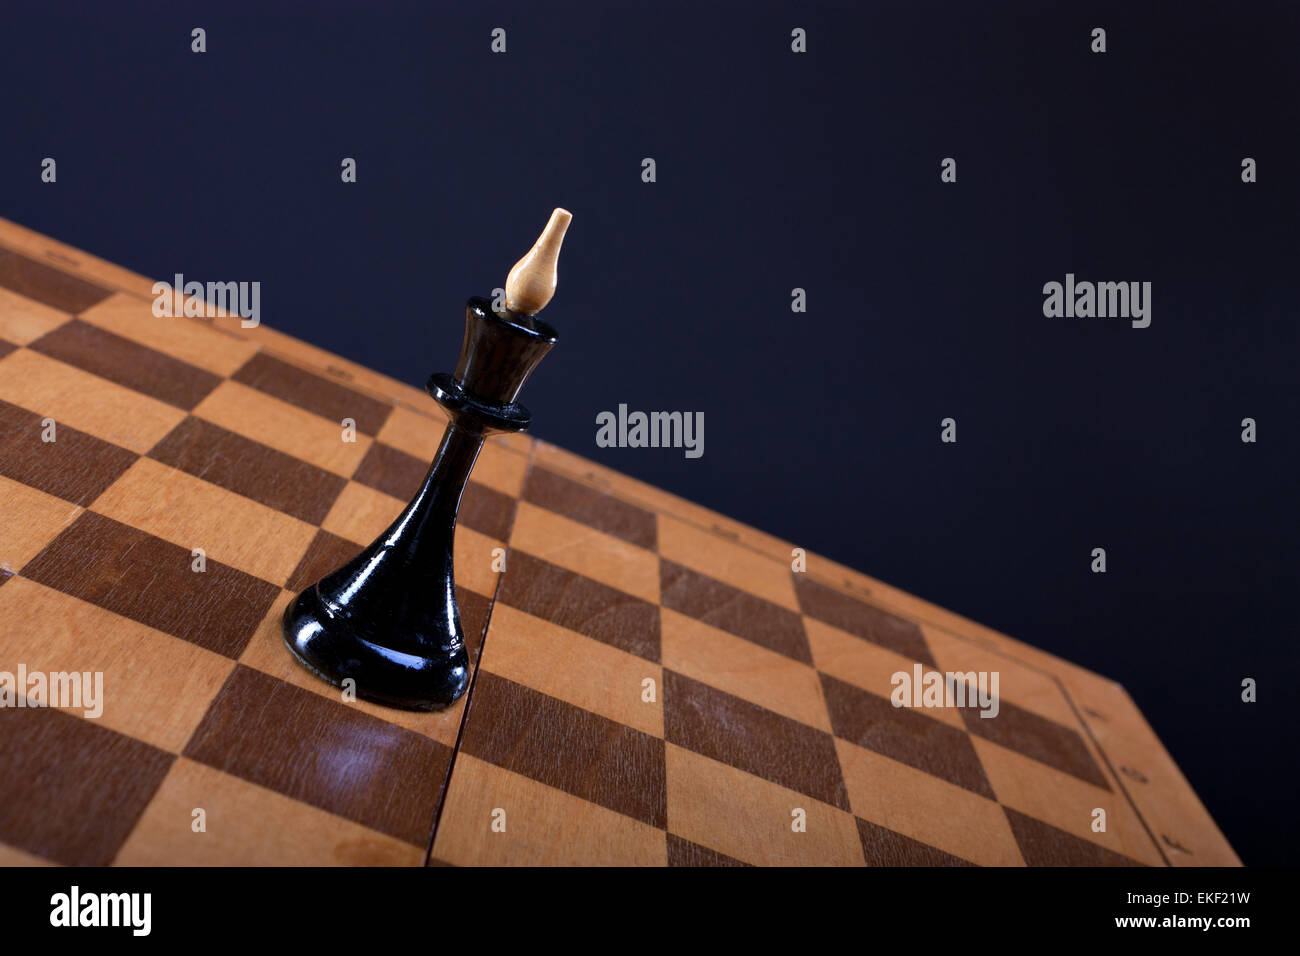 chess queen on the Board - Stock Image